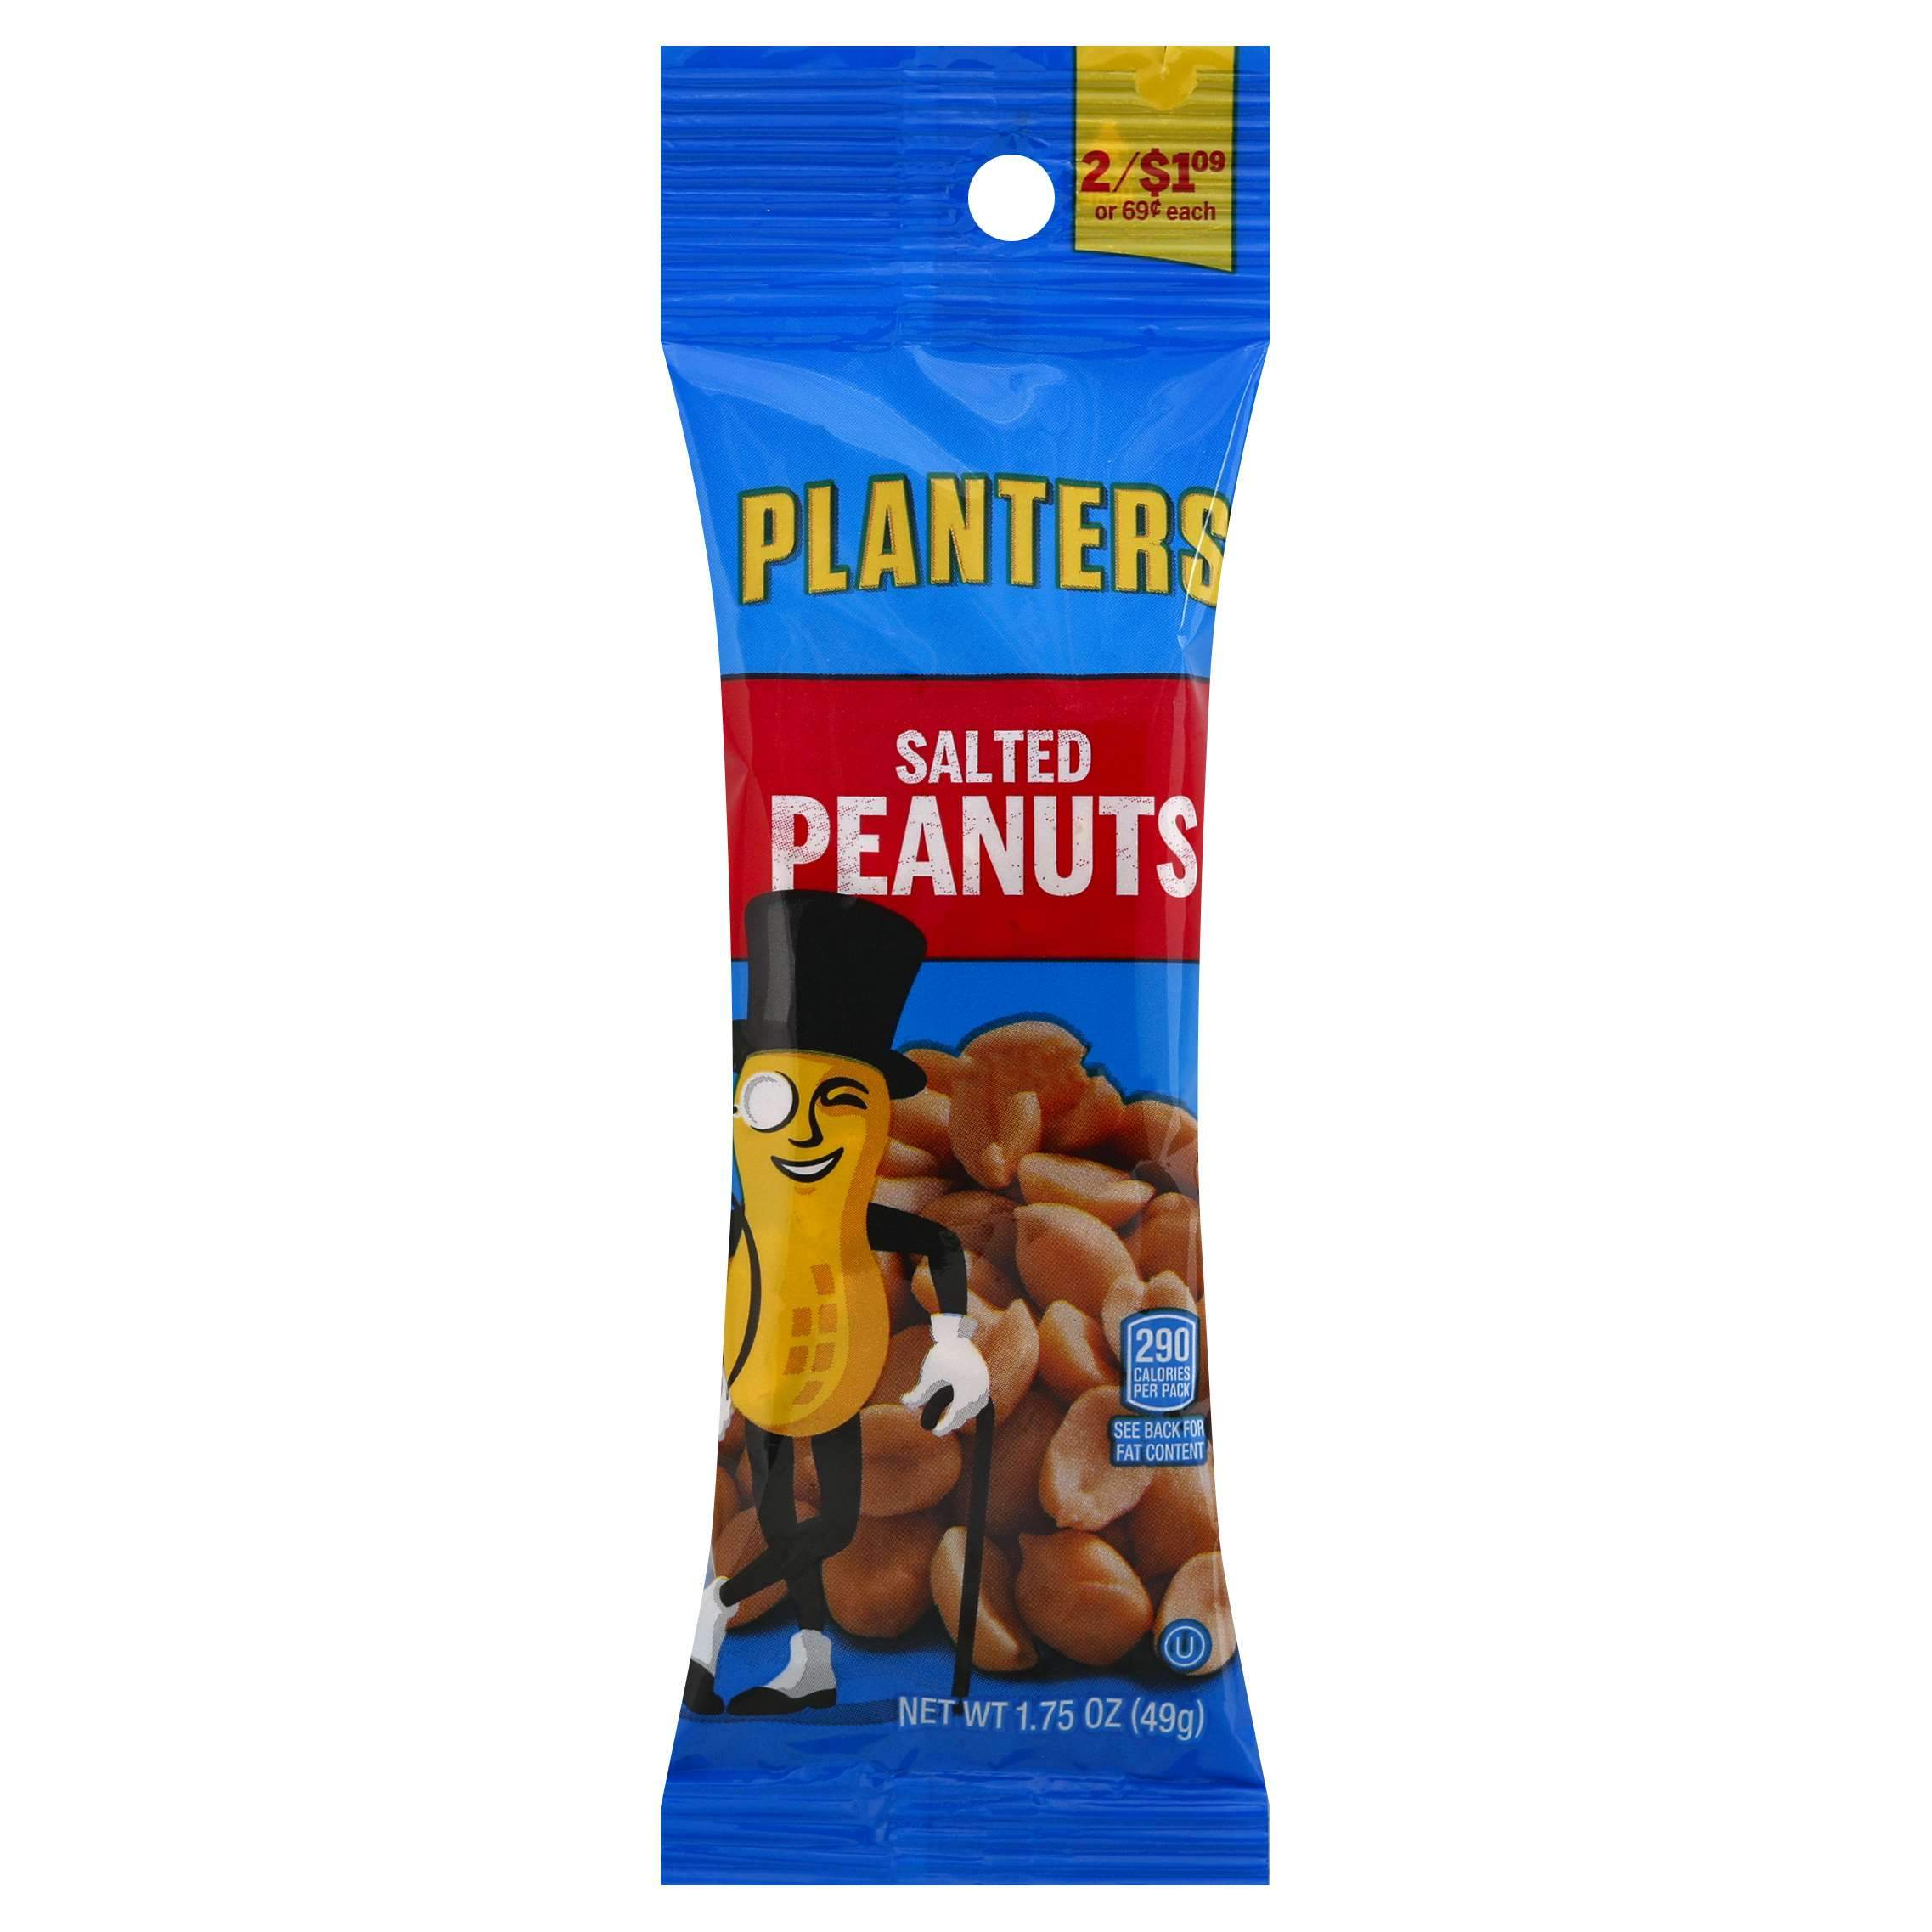 Planters Peanuts Planters Salted 1.75 Ounce